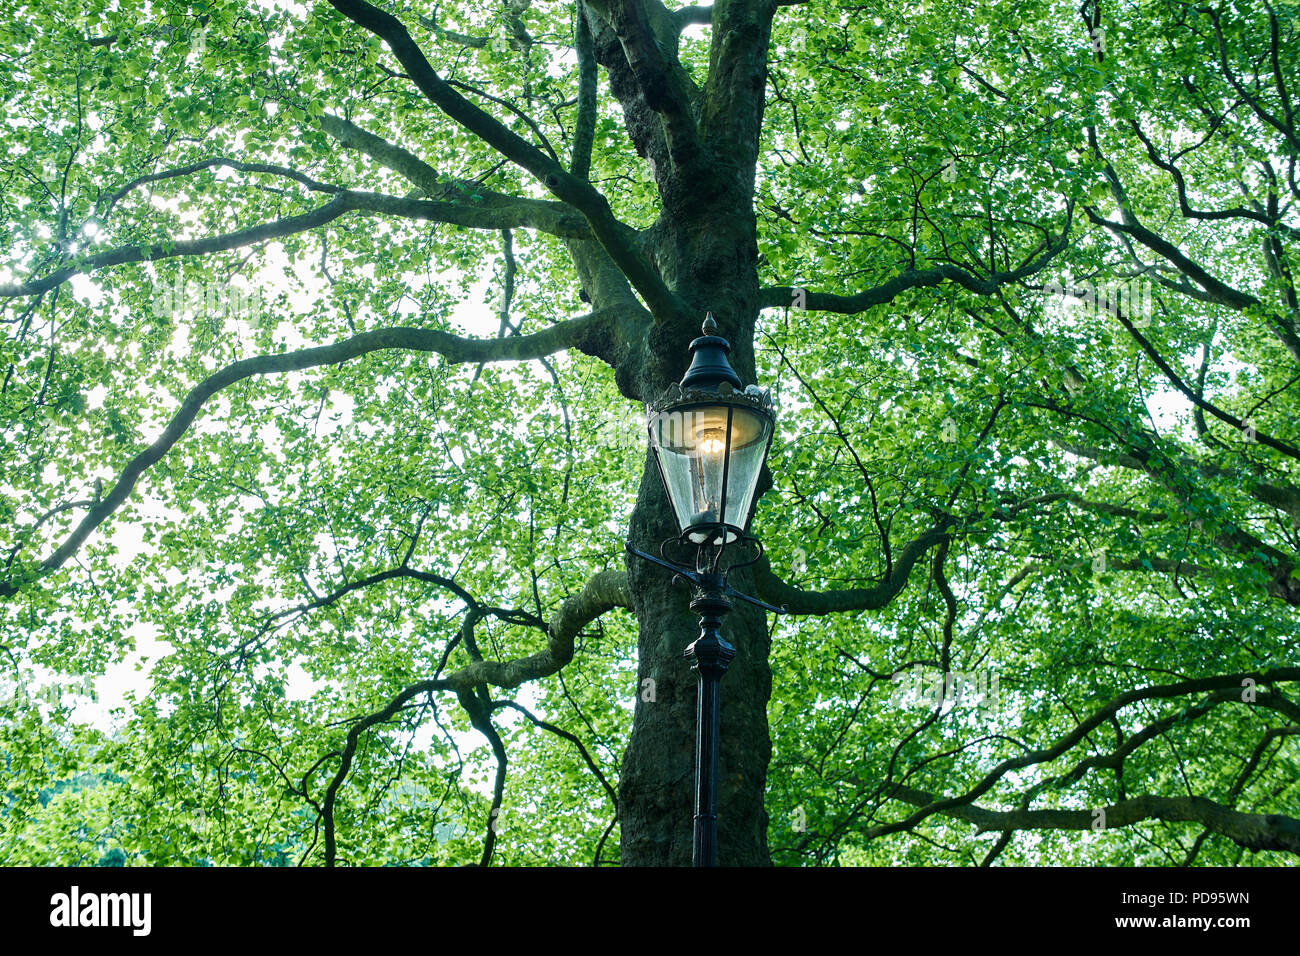 lamp light in a London park - Stock Image